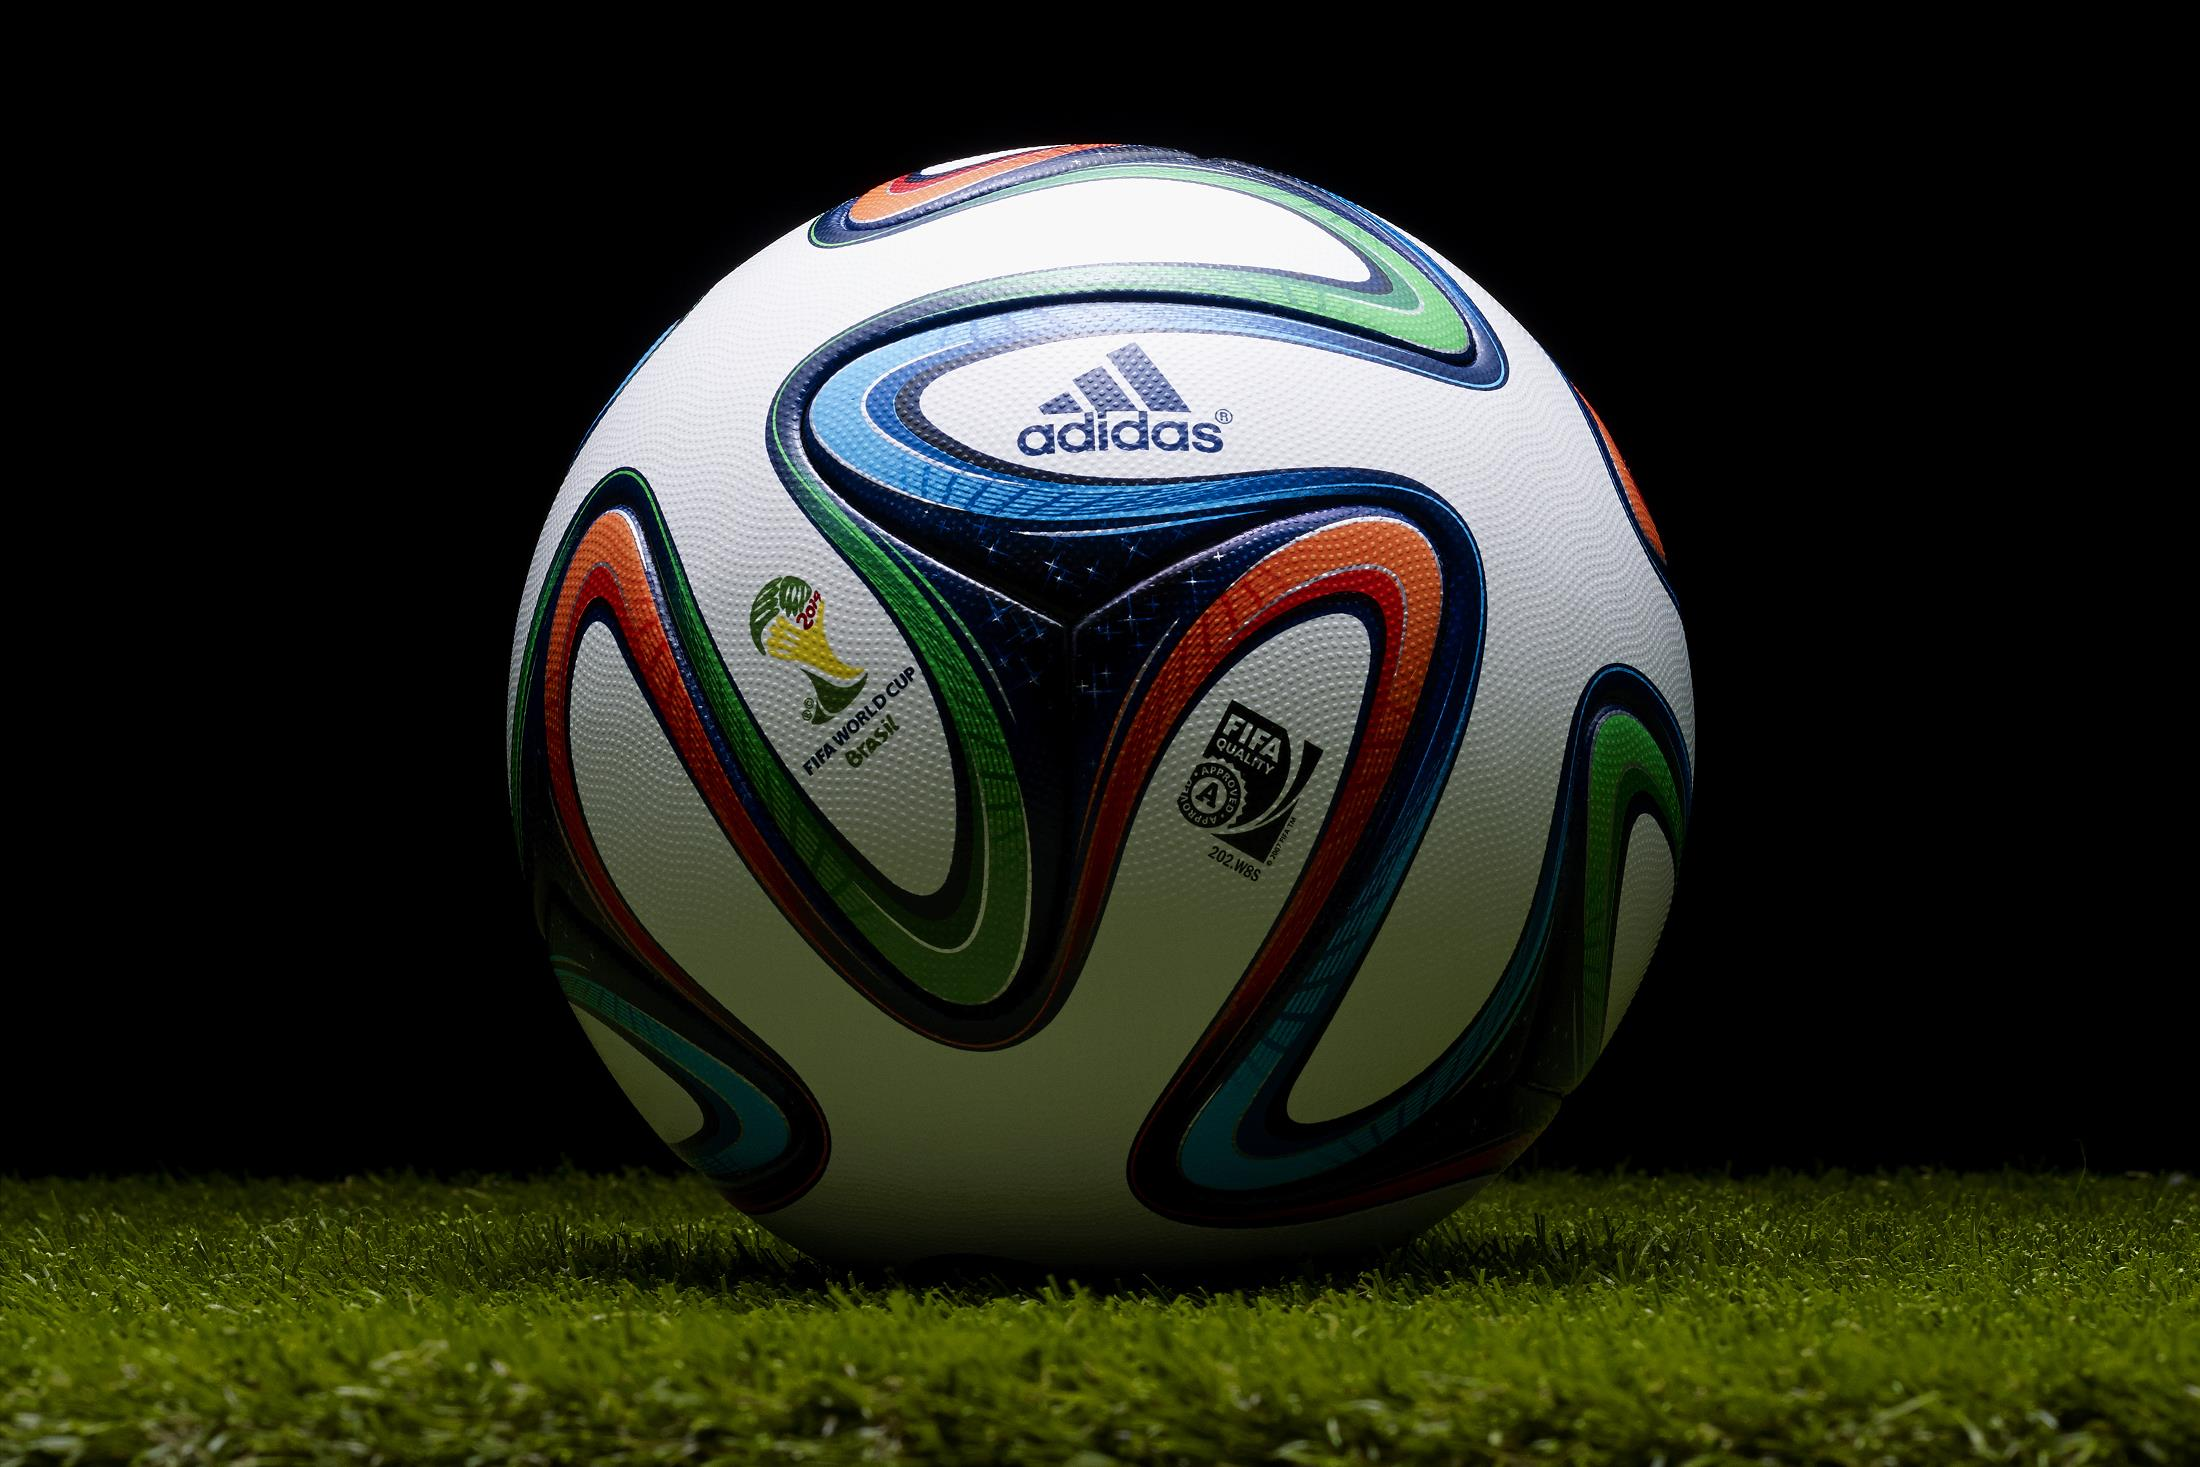 brazuca-ballon-officiel-coupe-du-monde-2014-adidas